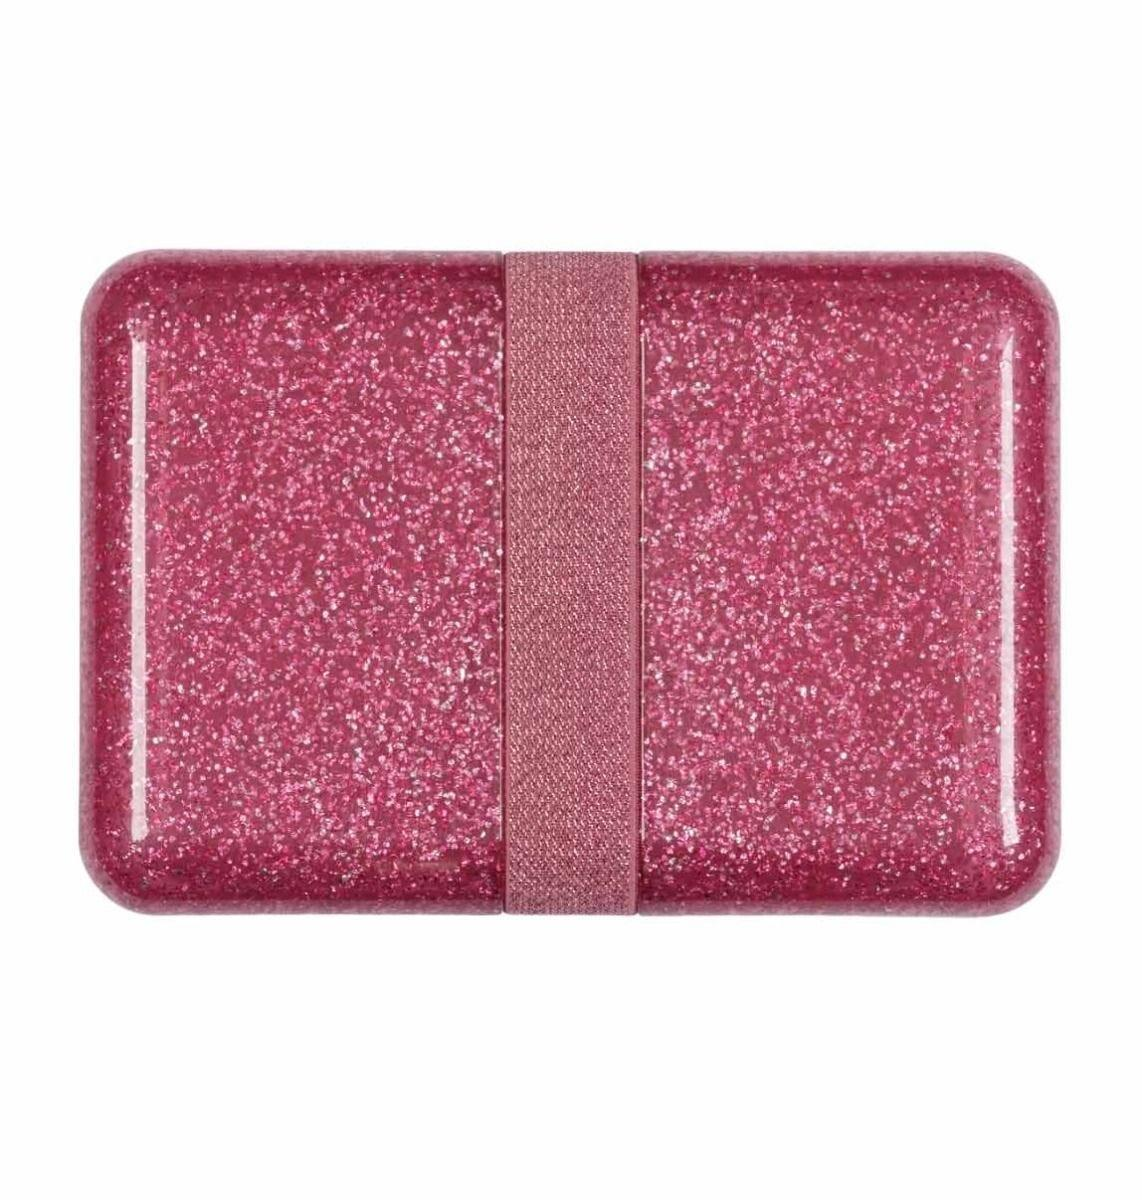 A Little Lovely Company - Lunch box: Glitter - pink